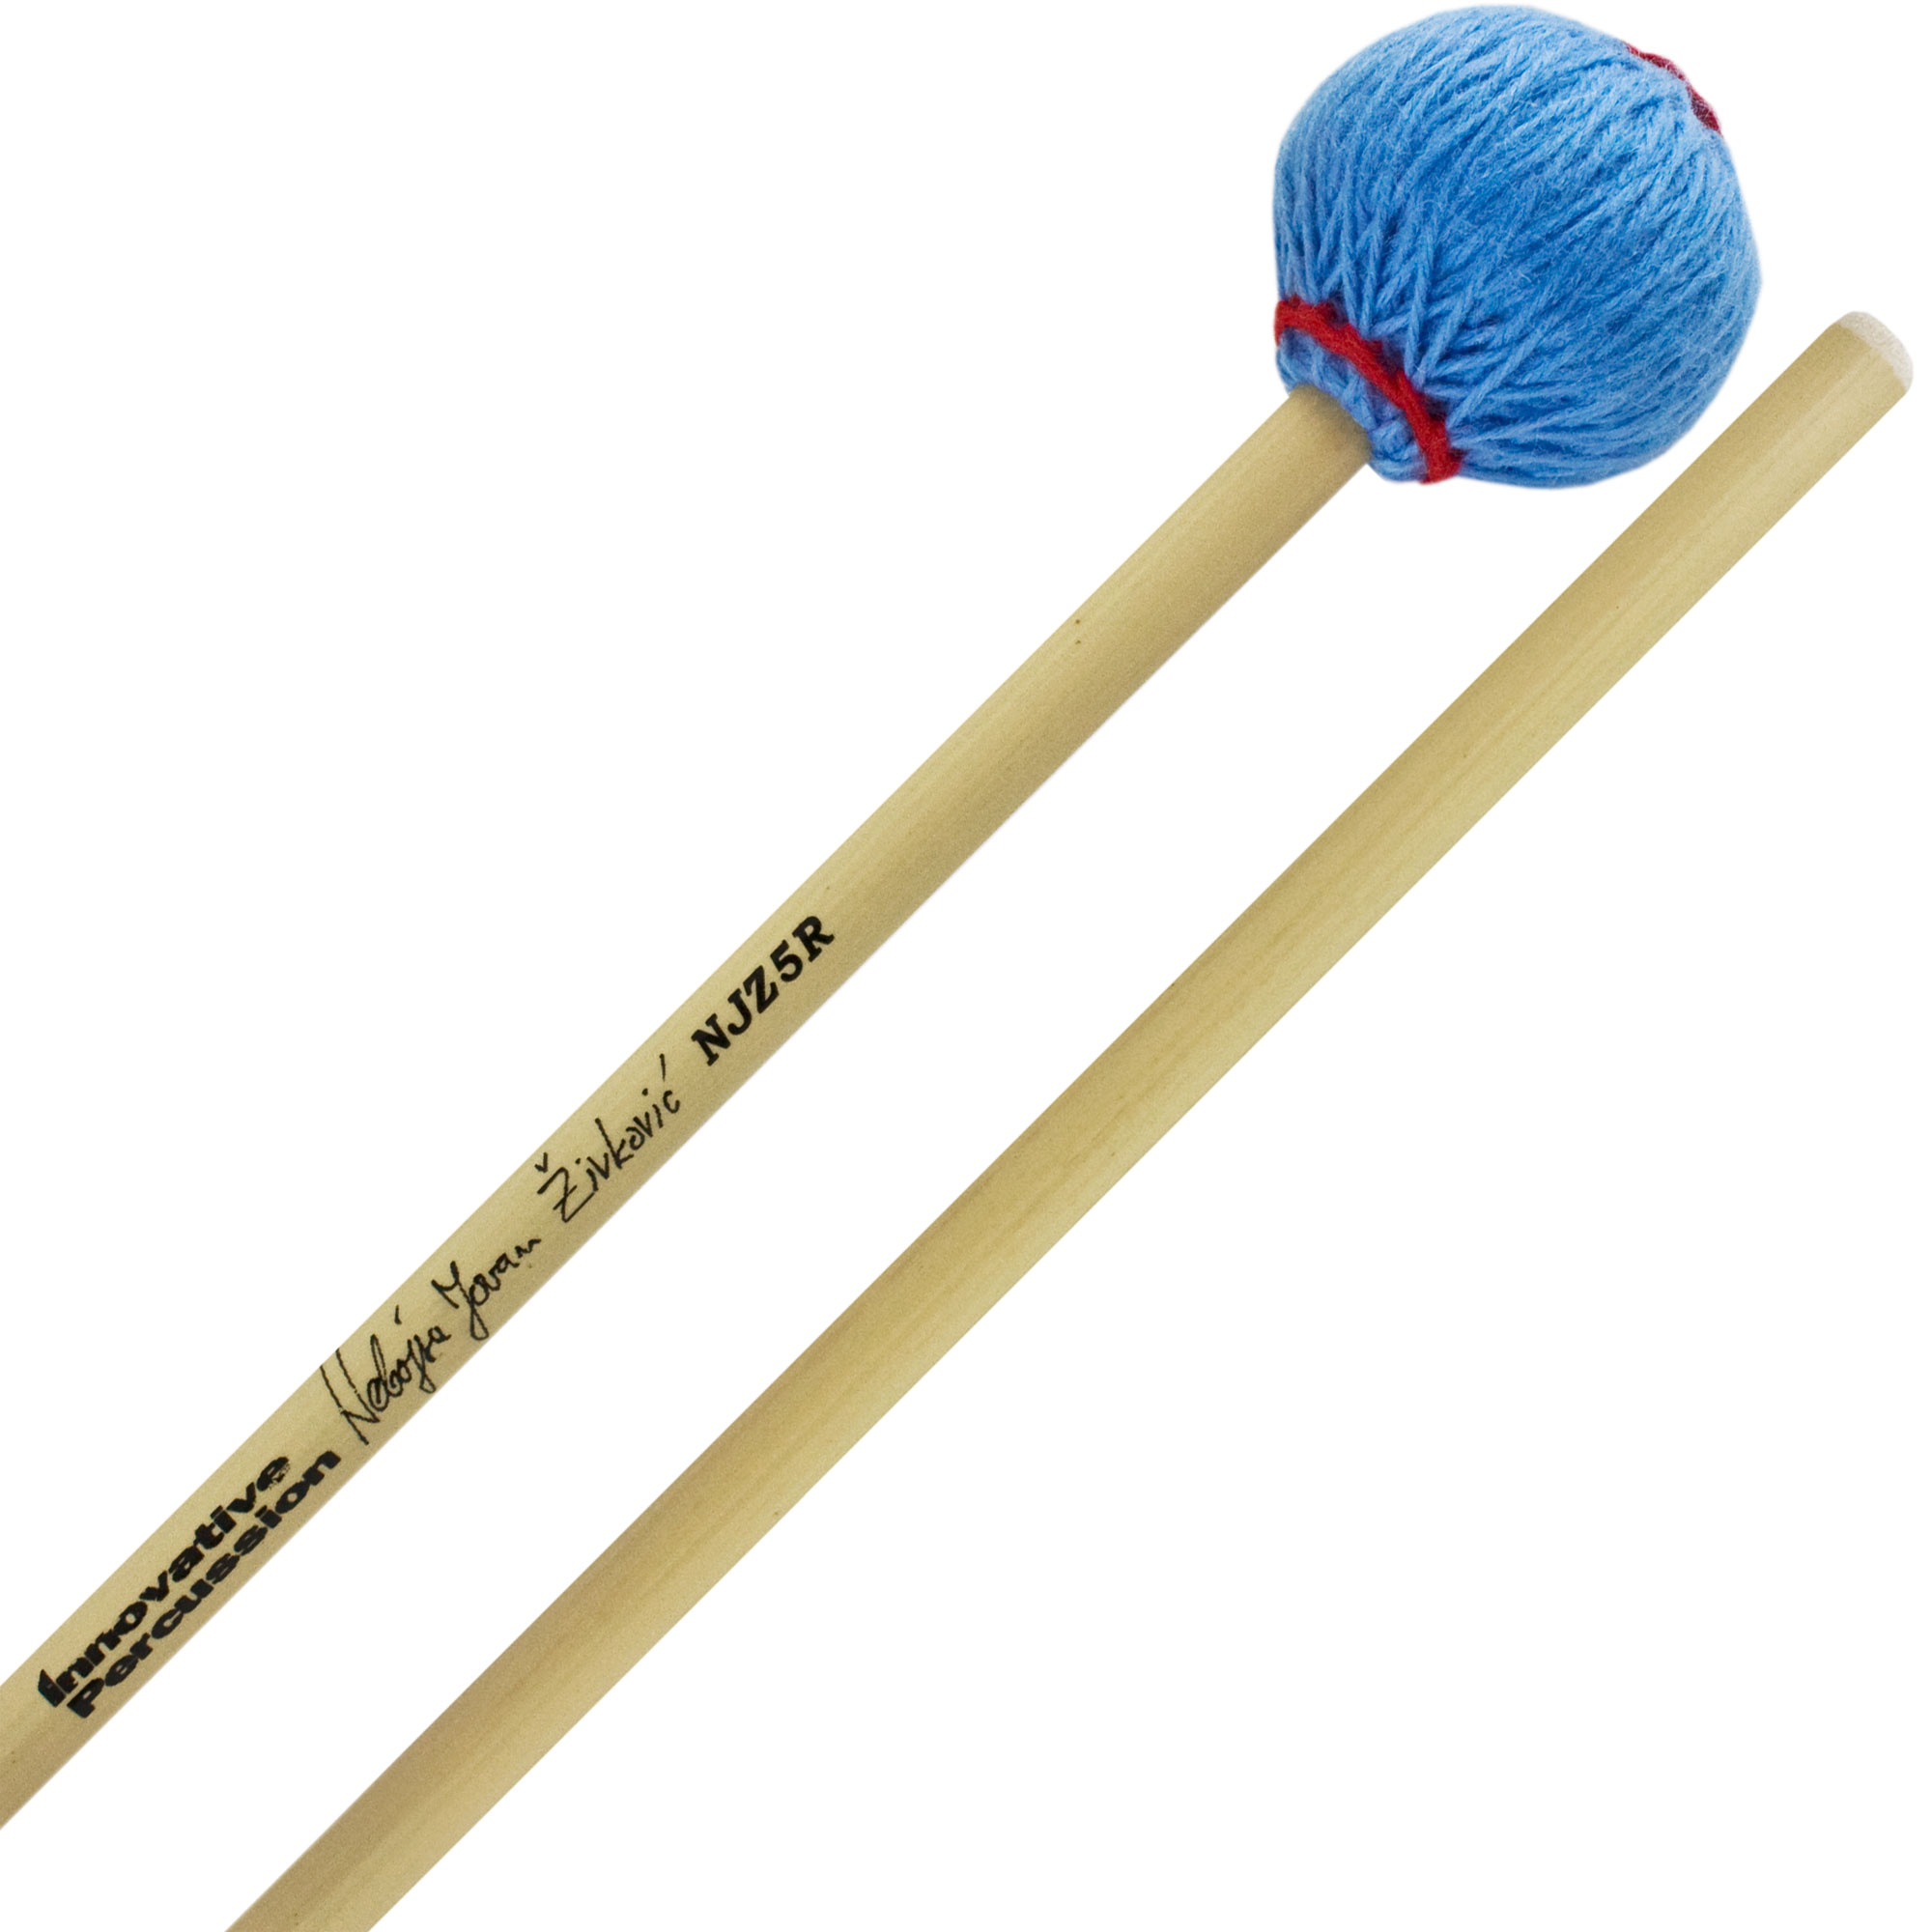 Innovative Percussion Nebojsa Zivkovic General Signature Hard Marimba Mallets with Rattan Shafts